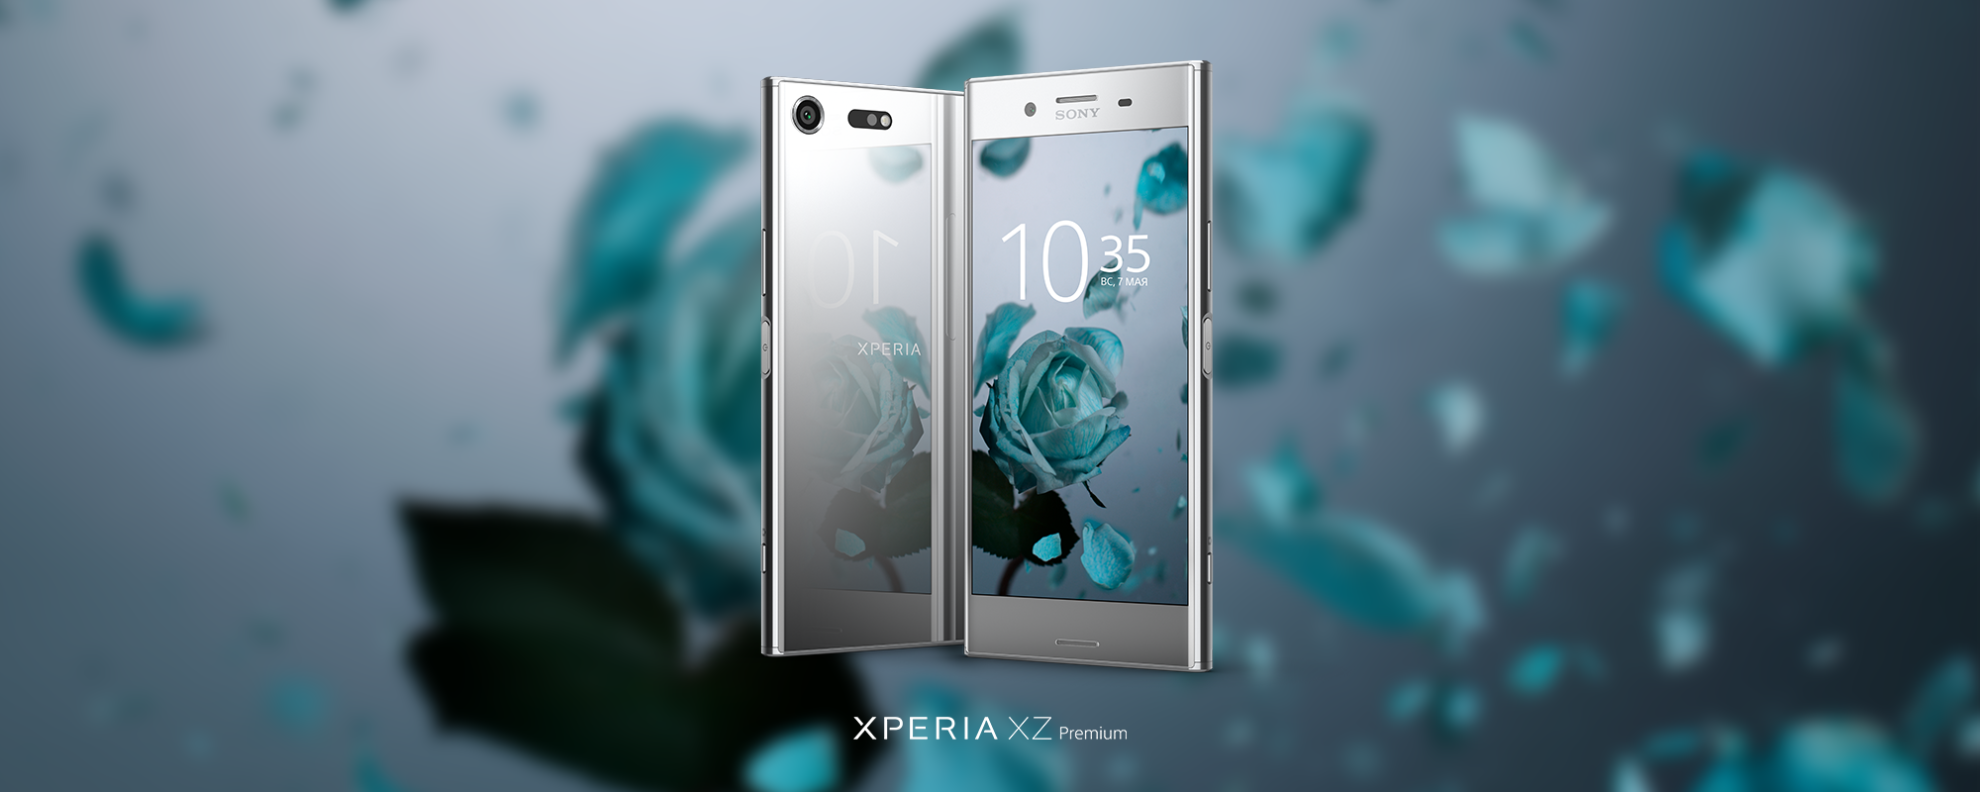 Sony-Xperia-XZ-Premium_banner.png